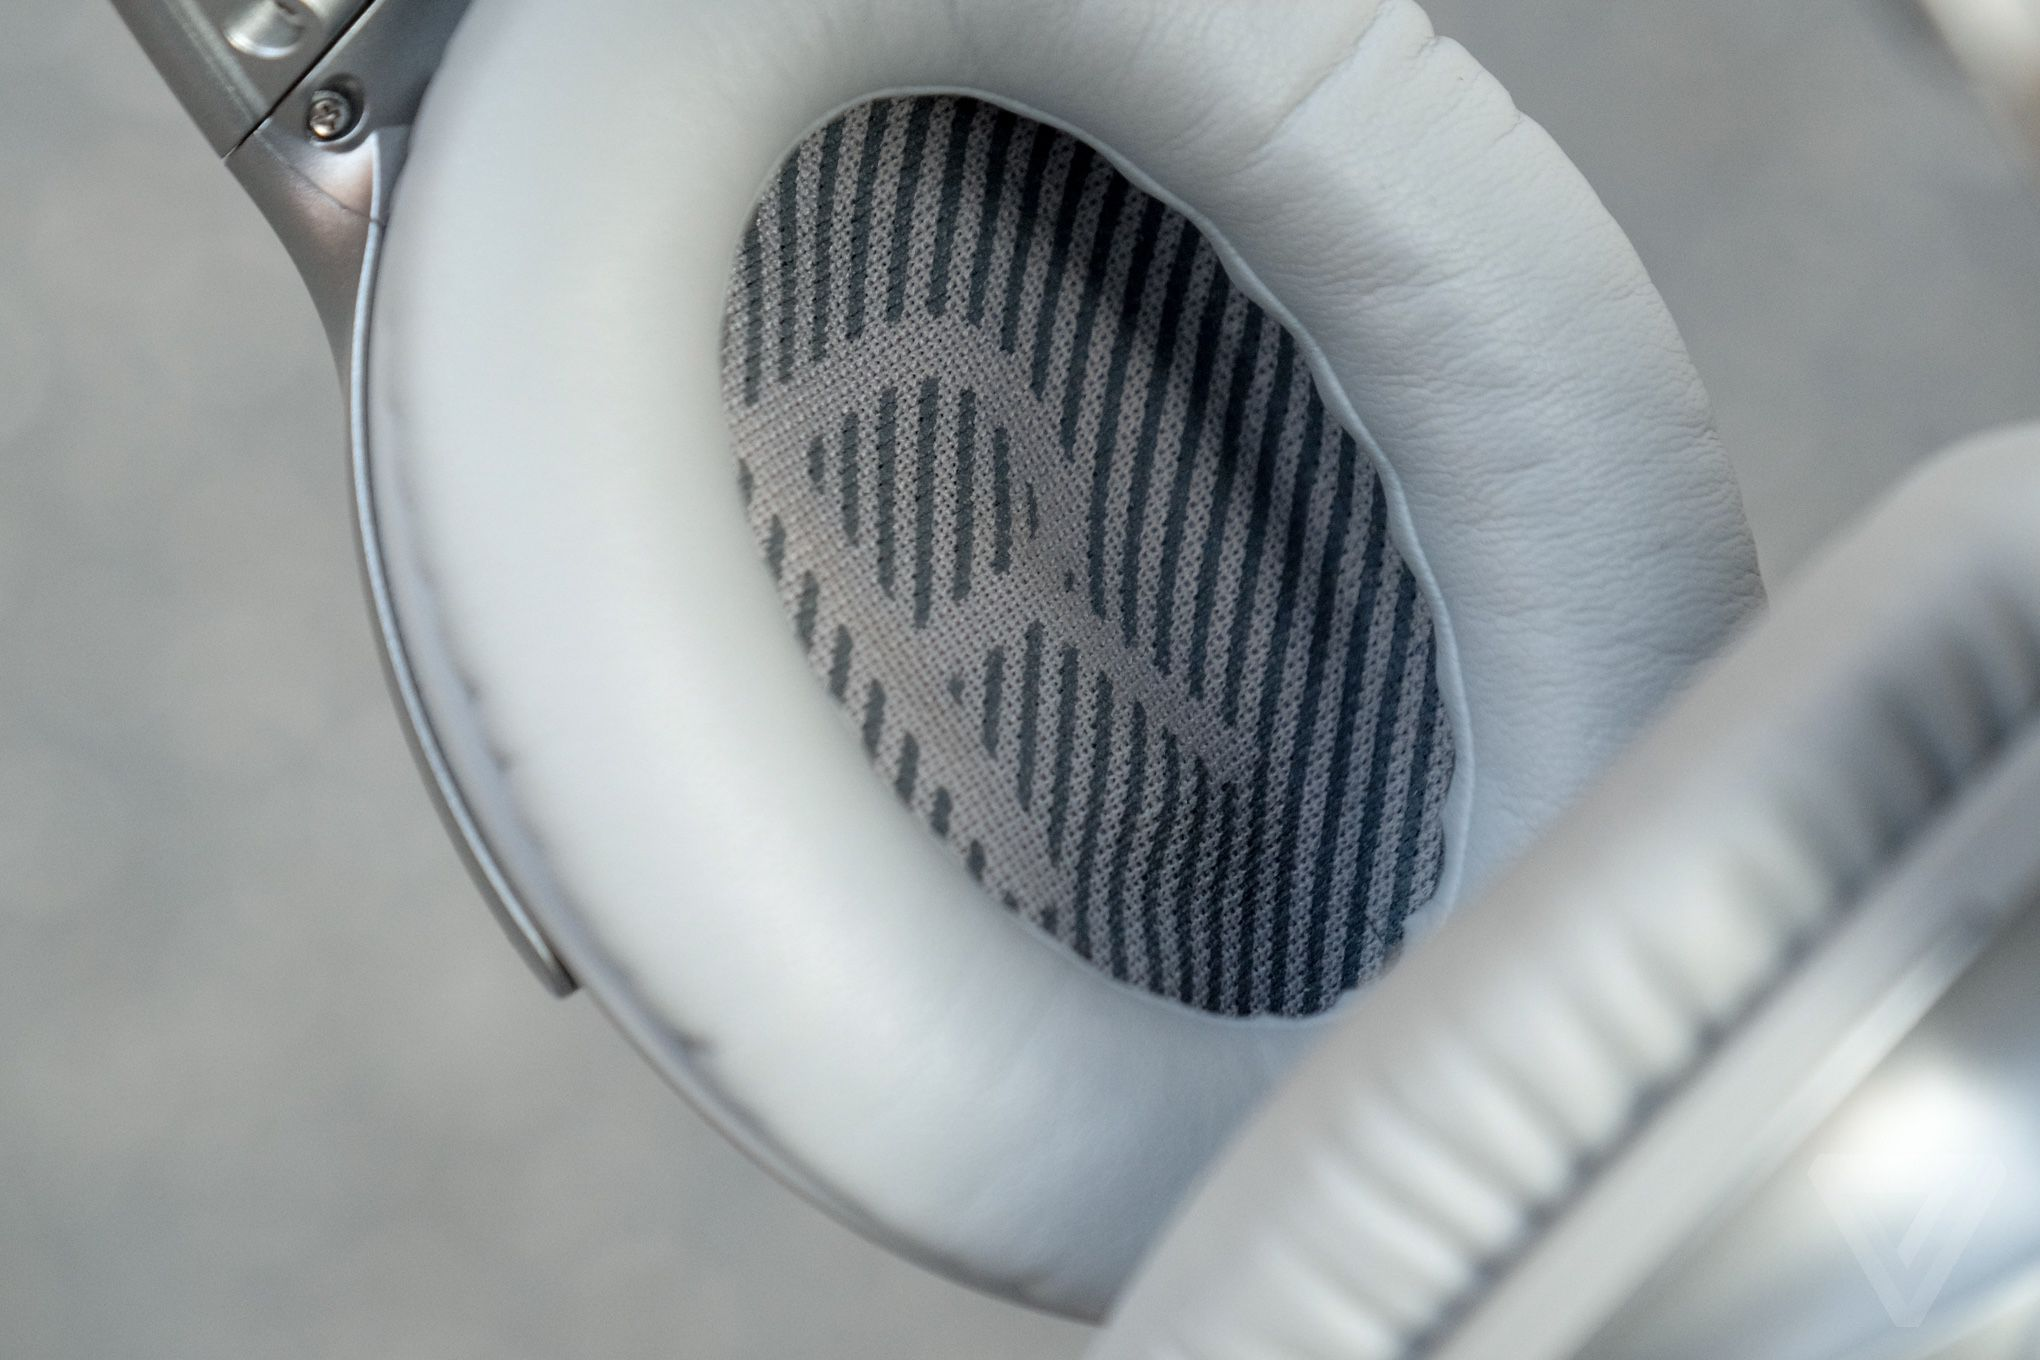 Bose QuietComfort 35 review: the best noise-canceling ...